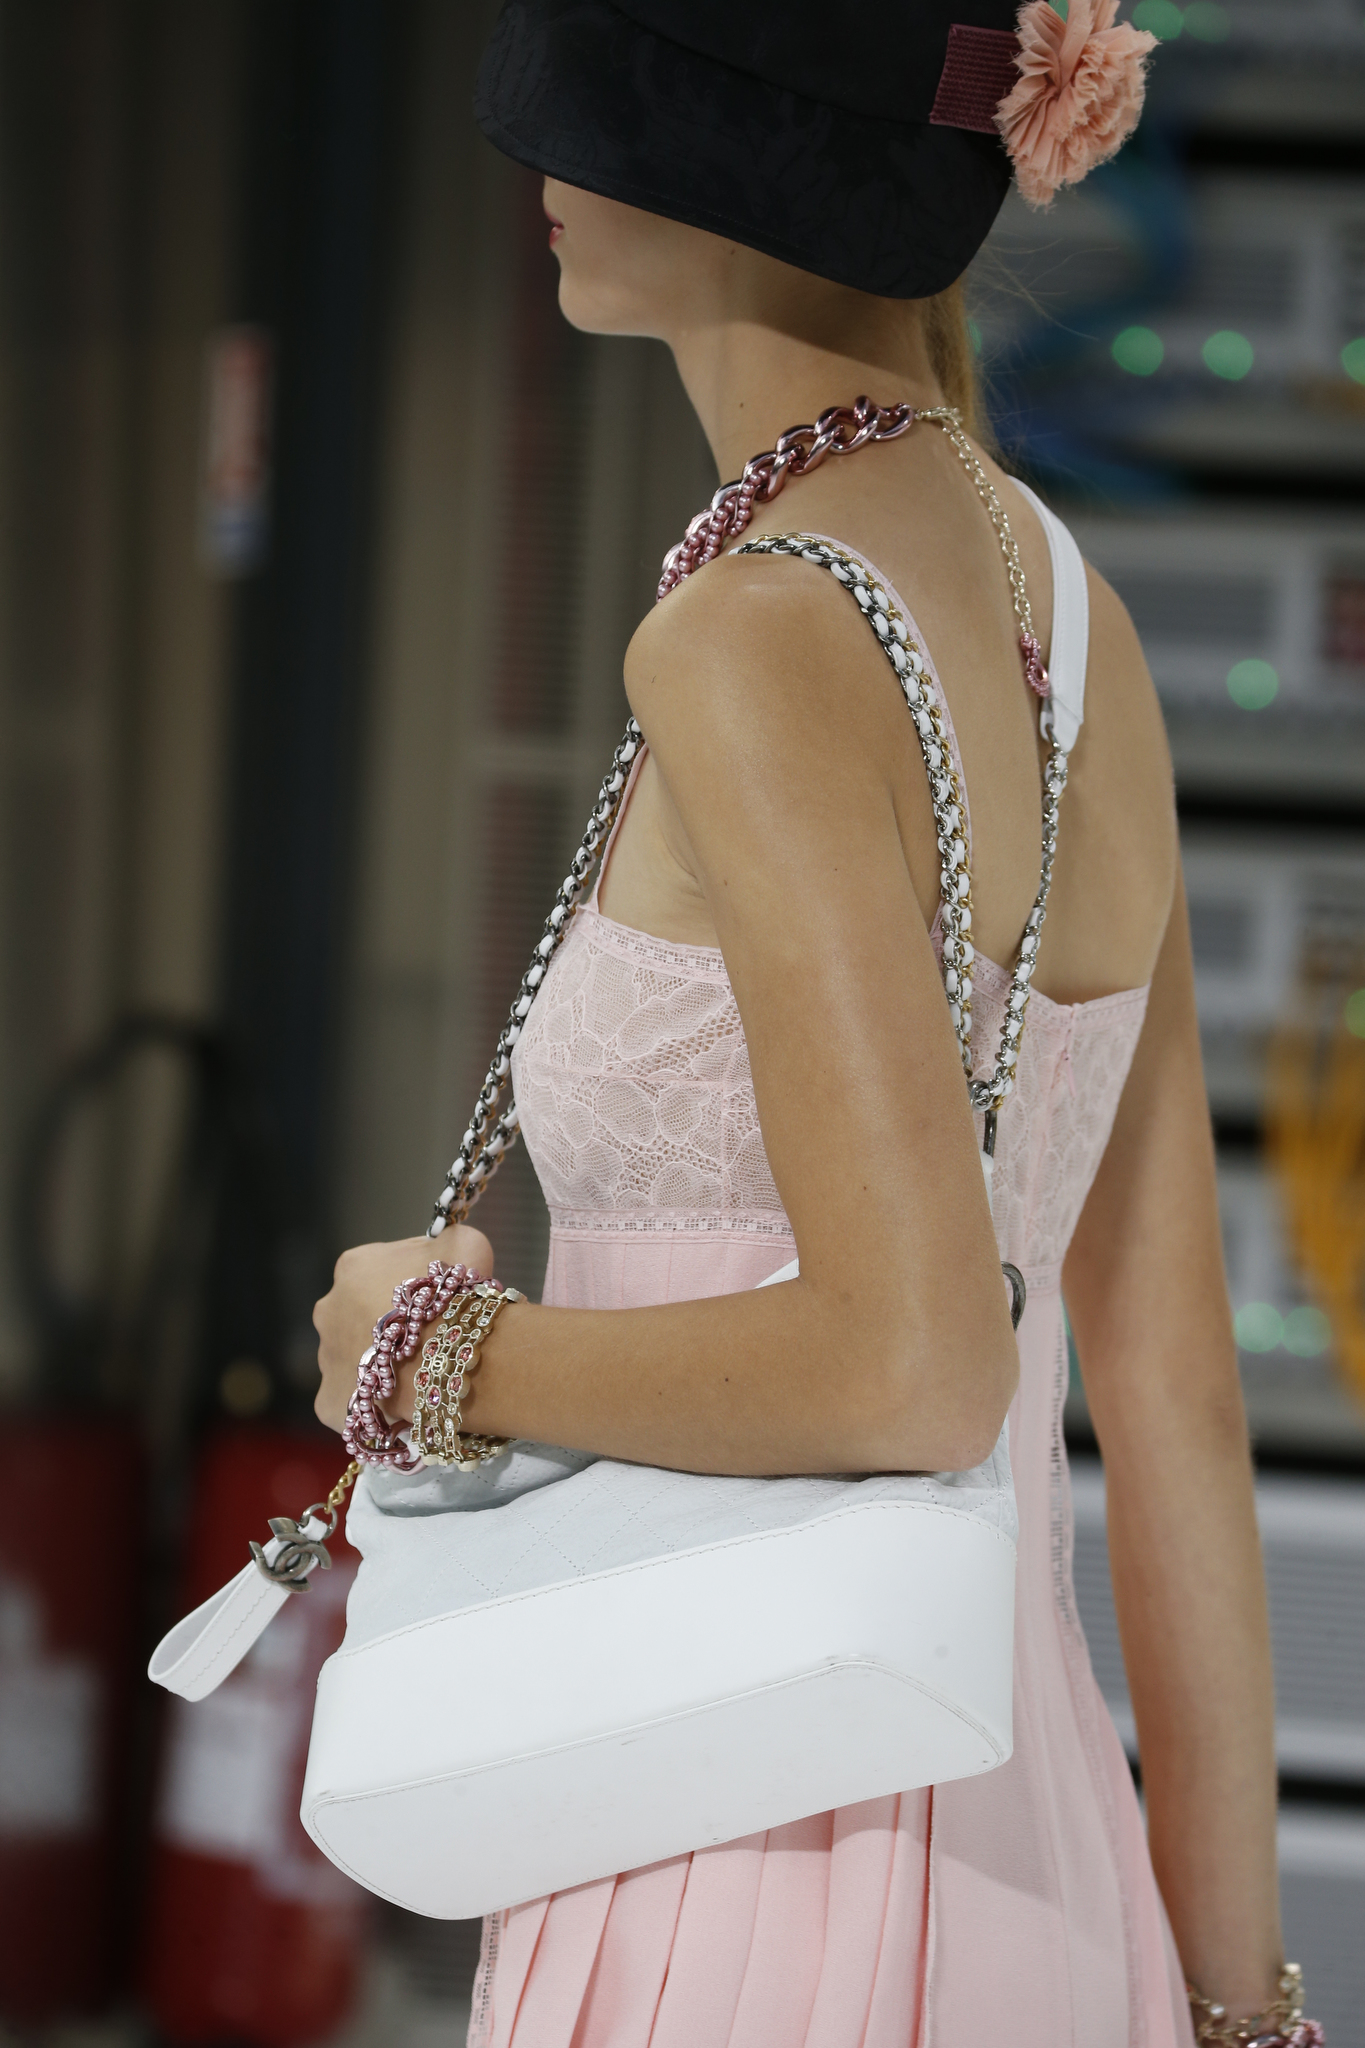 Chanel Shoes and Bags for Spring 2017: Detail Photos of Accessories From the Runway